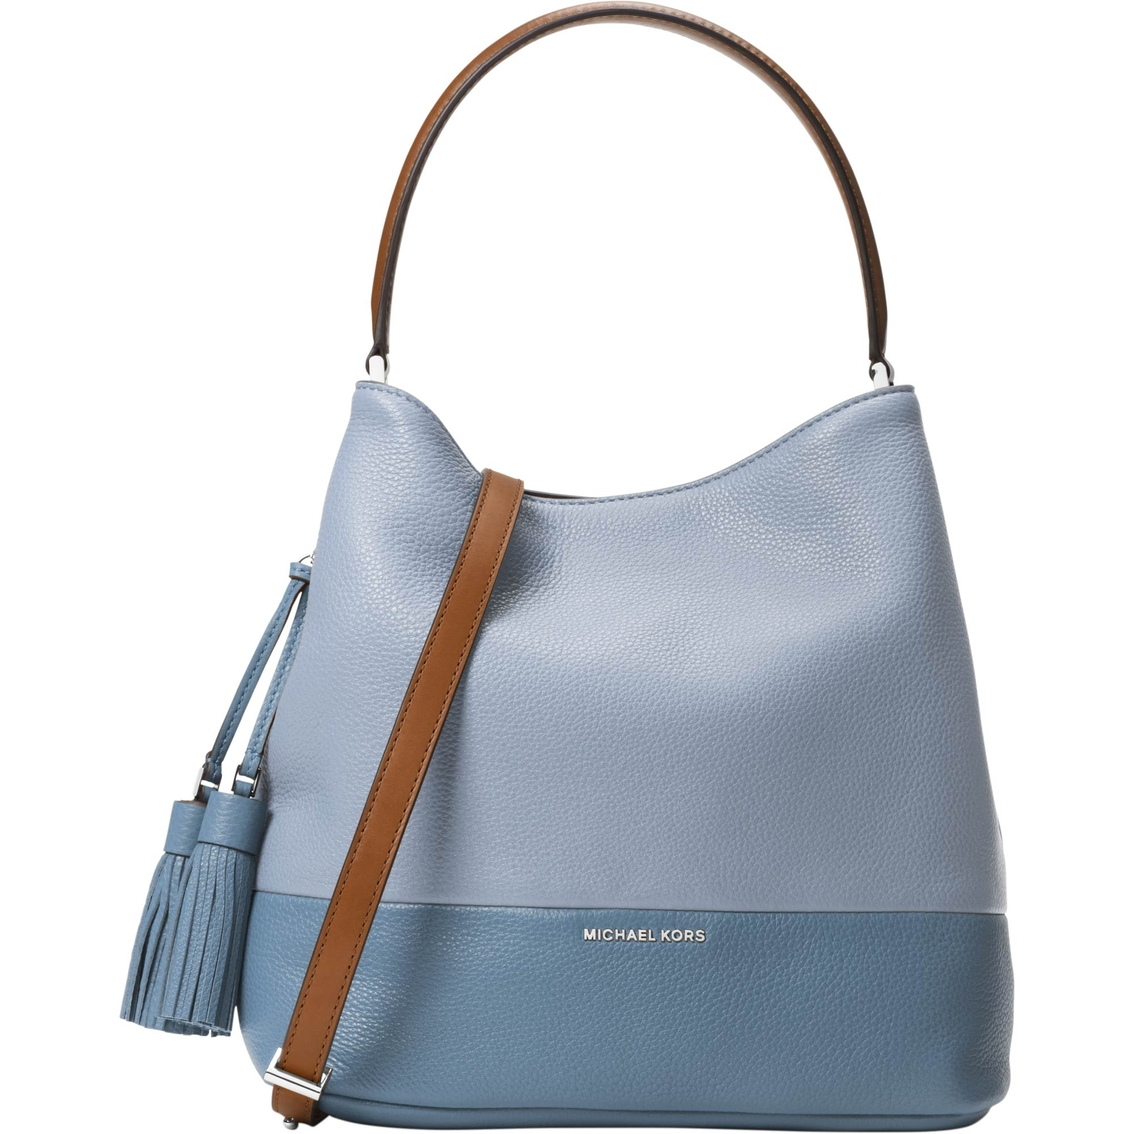 882076ae6bca Michael Kors Kip Large Bucket Bag | Handbags | Shop The Exchange